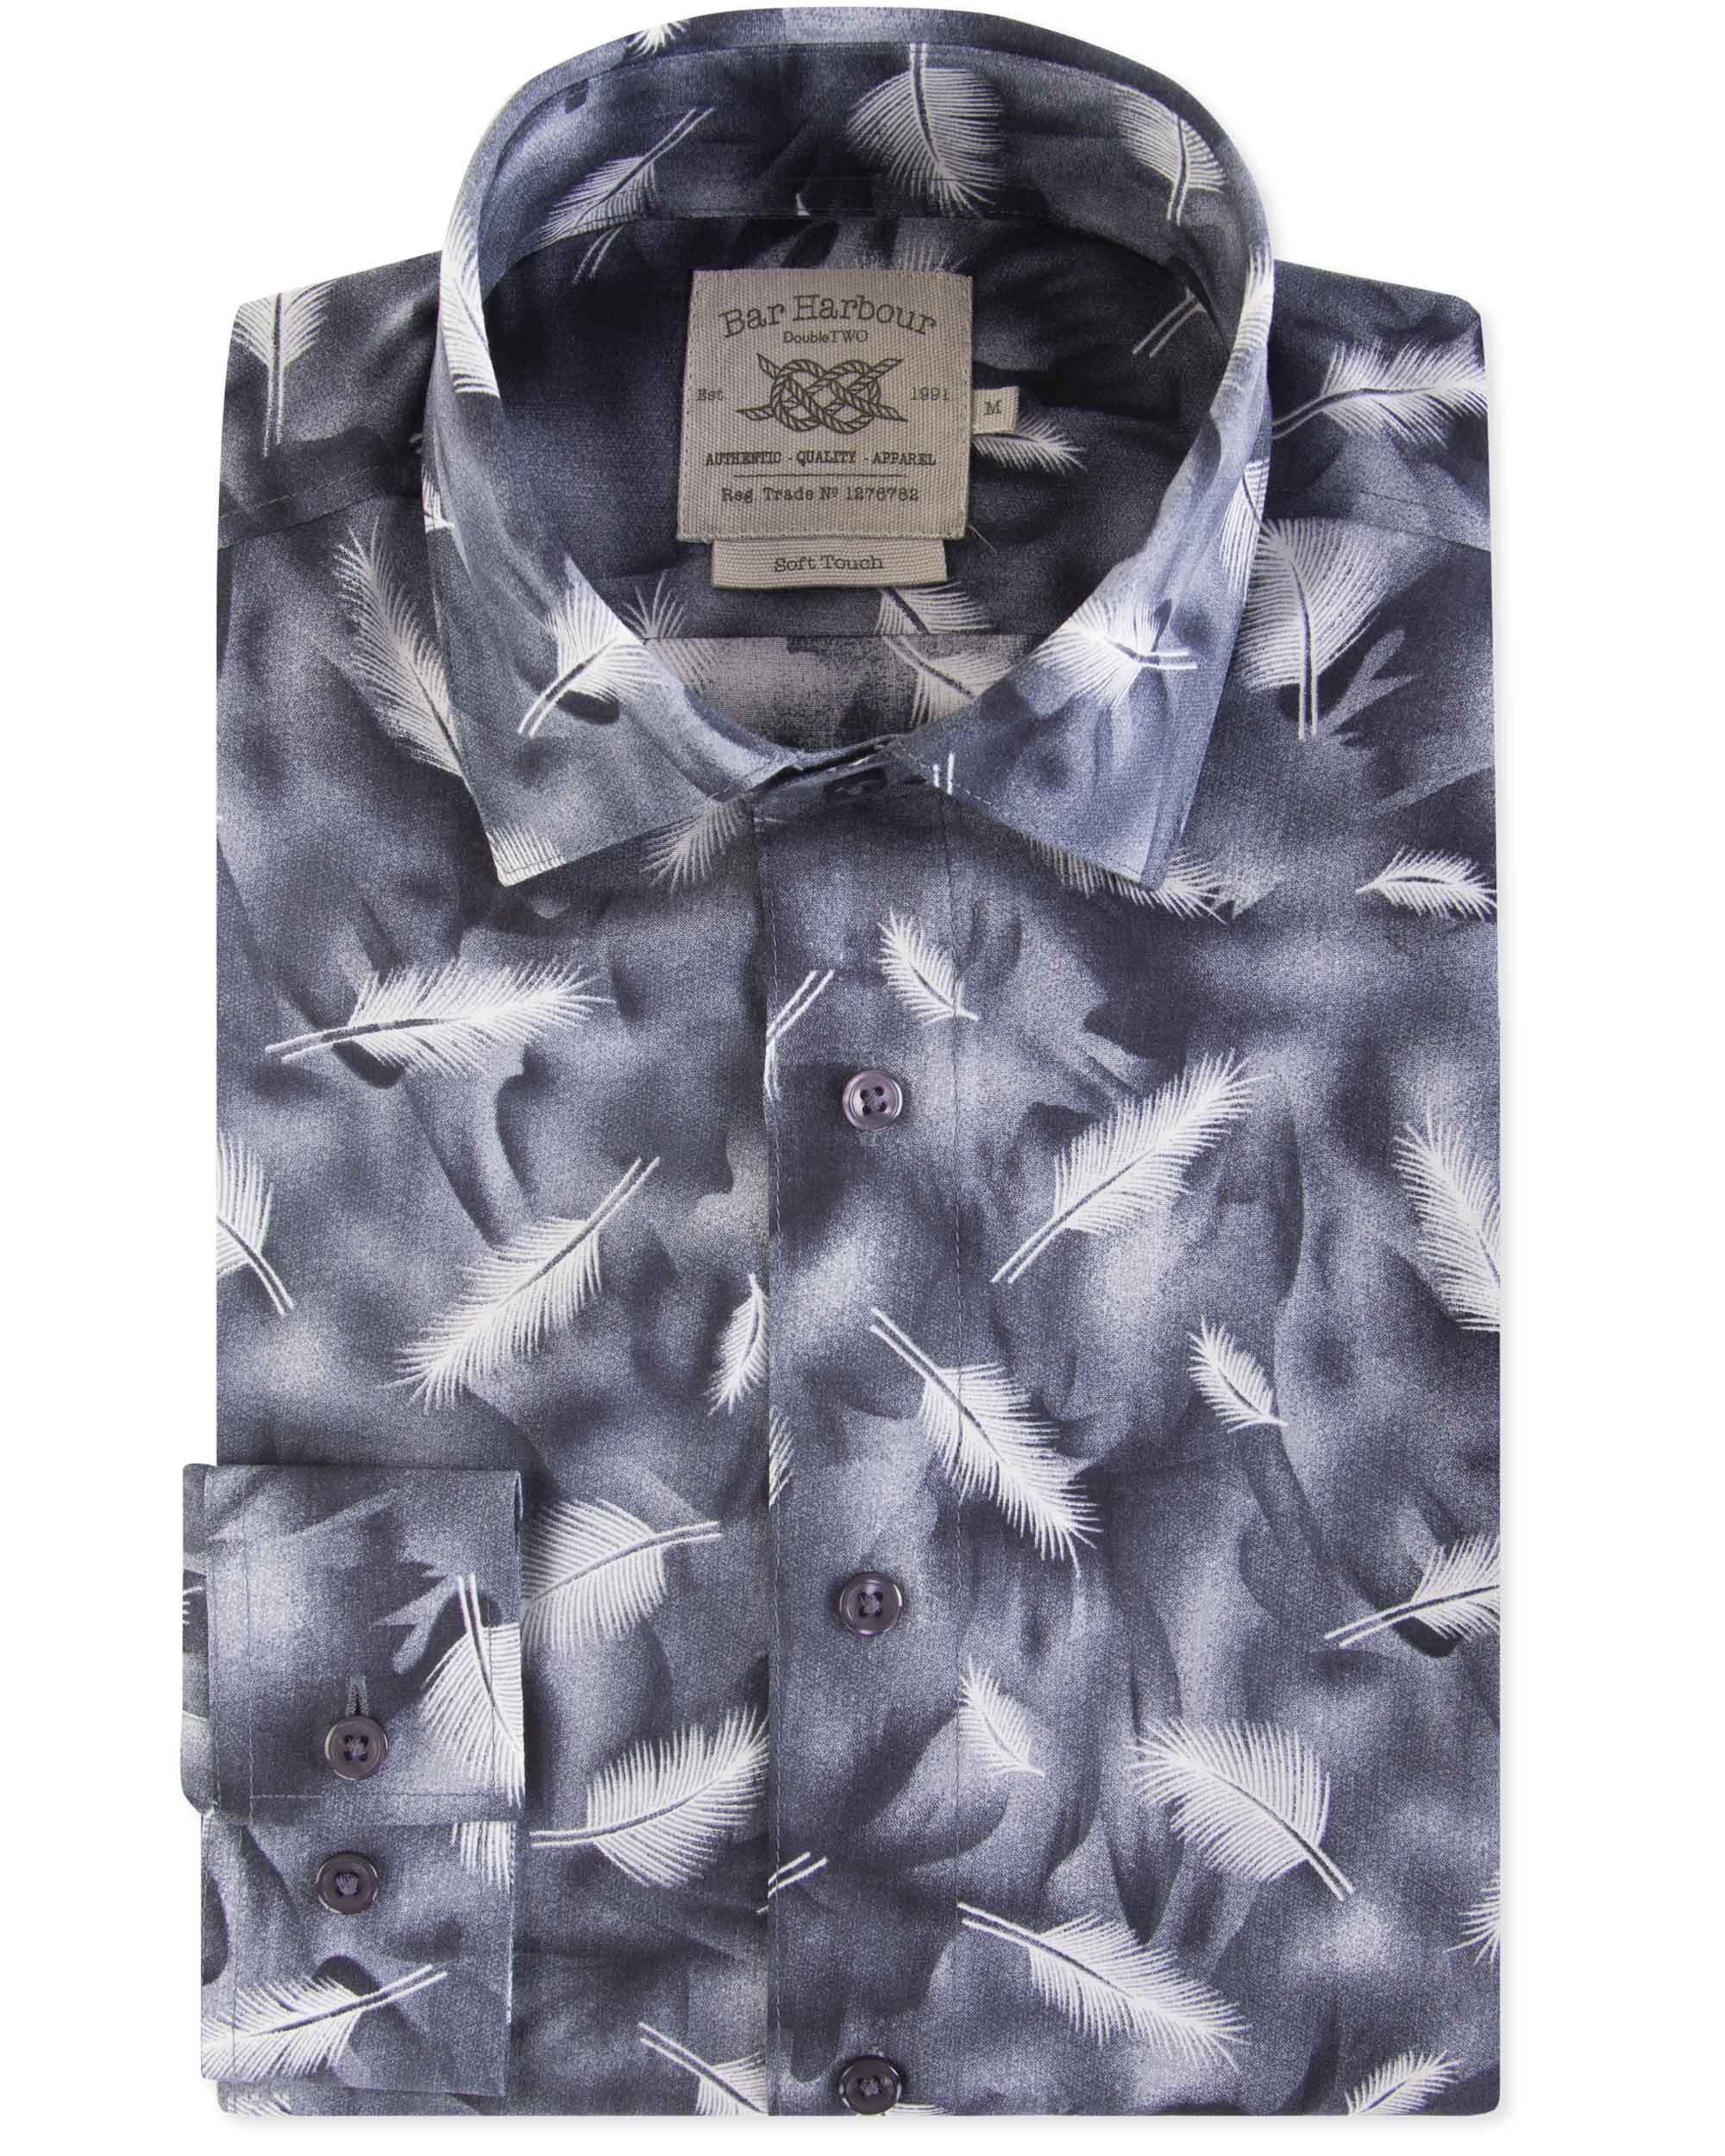 Feather Patterned Soft Touch Shirt